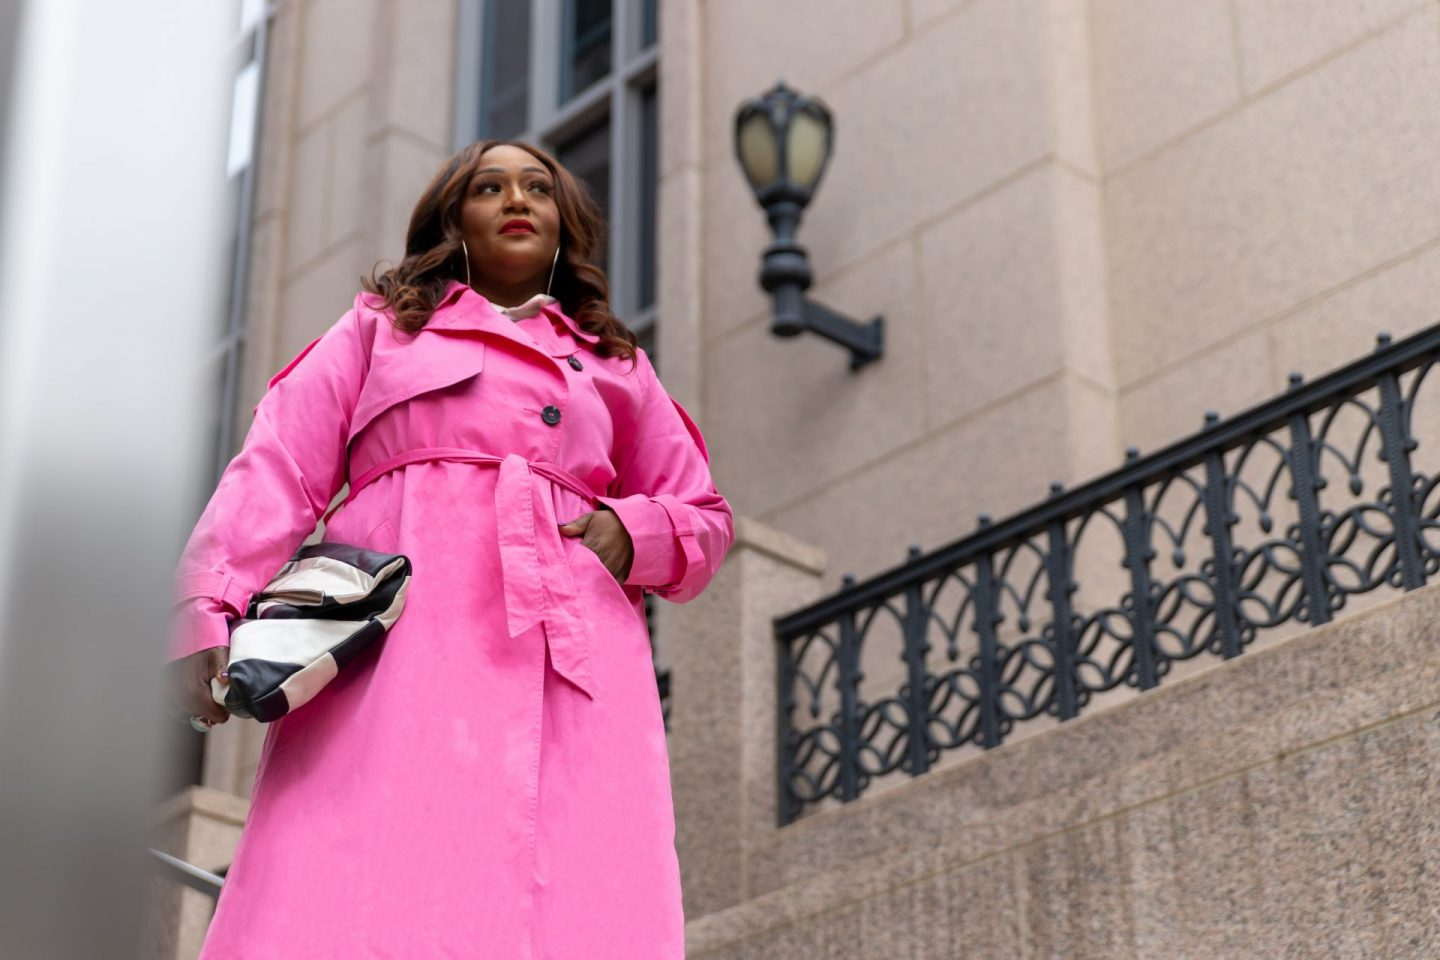 Influencer Nikki Free standing on stairs wearing a pink trench coat